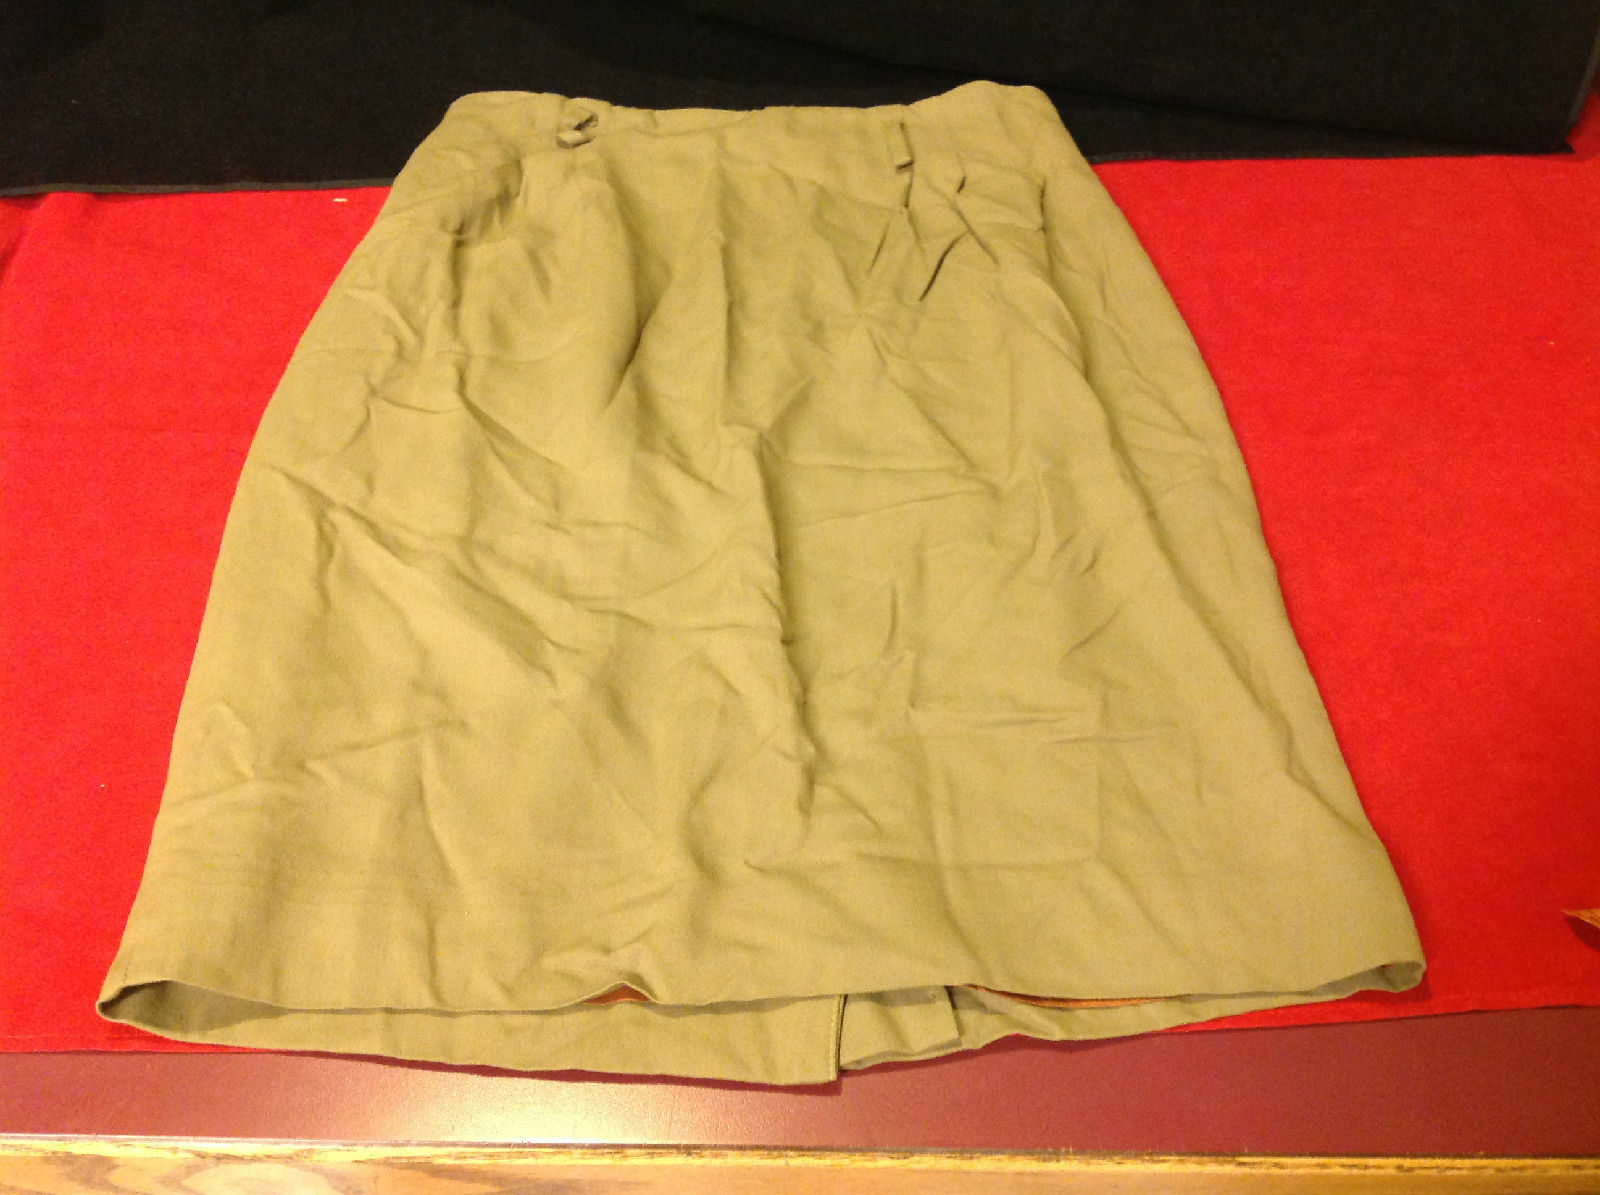 JH Collectibles Olive Colored Petite Skirt Size 8P